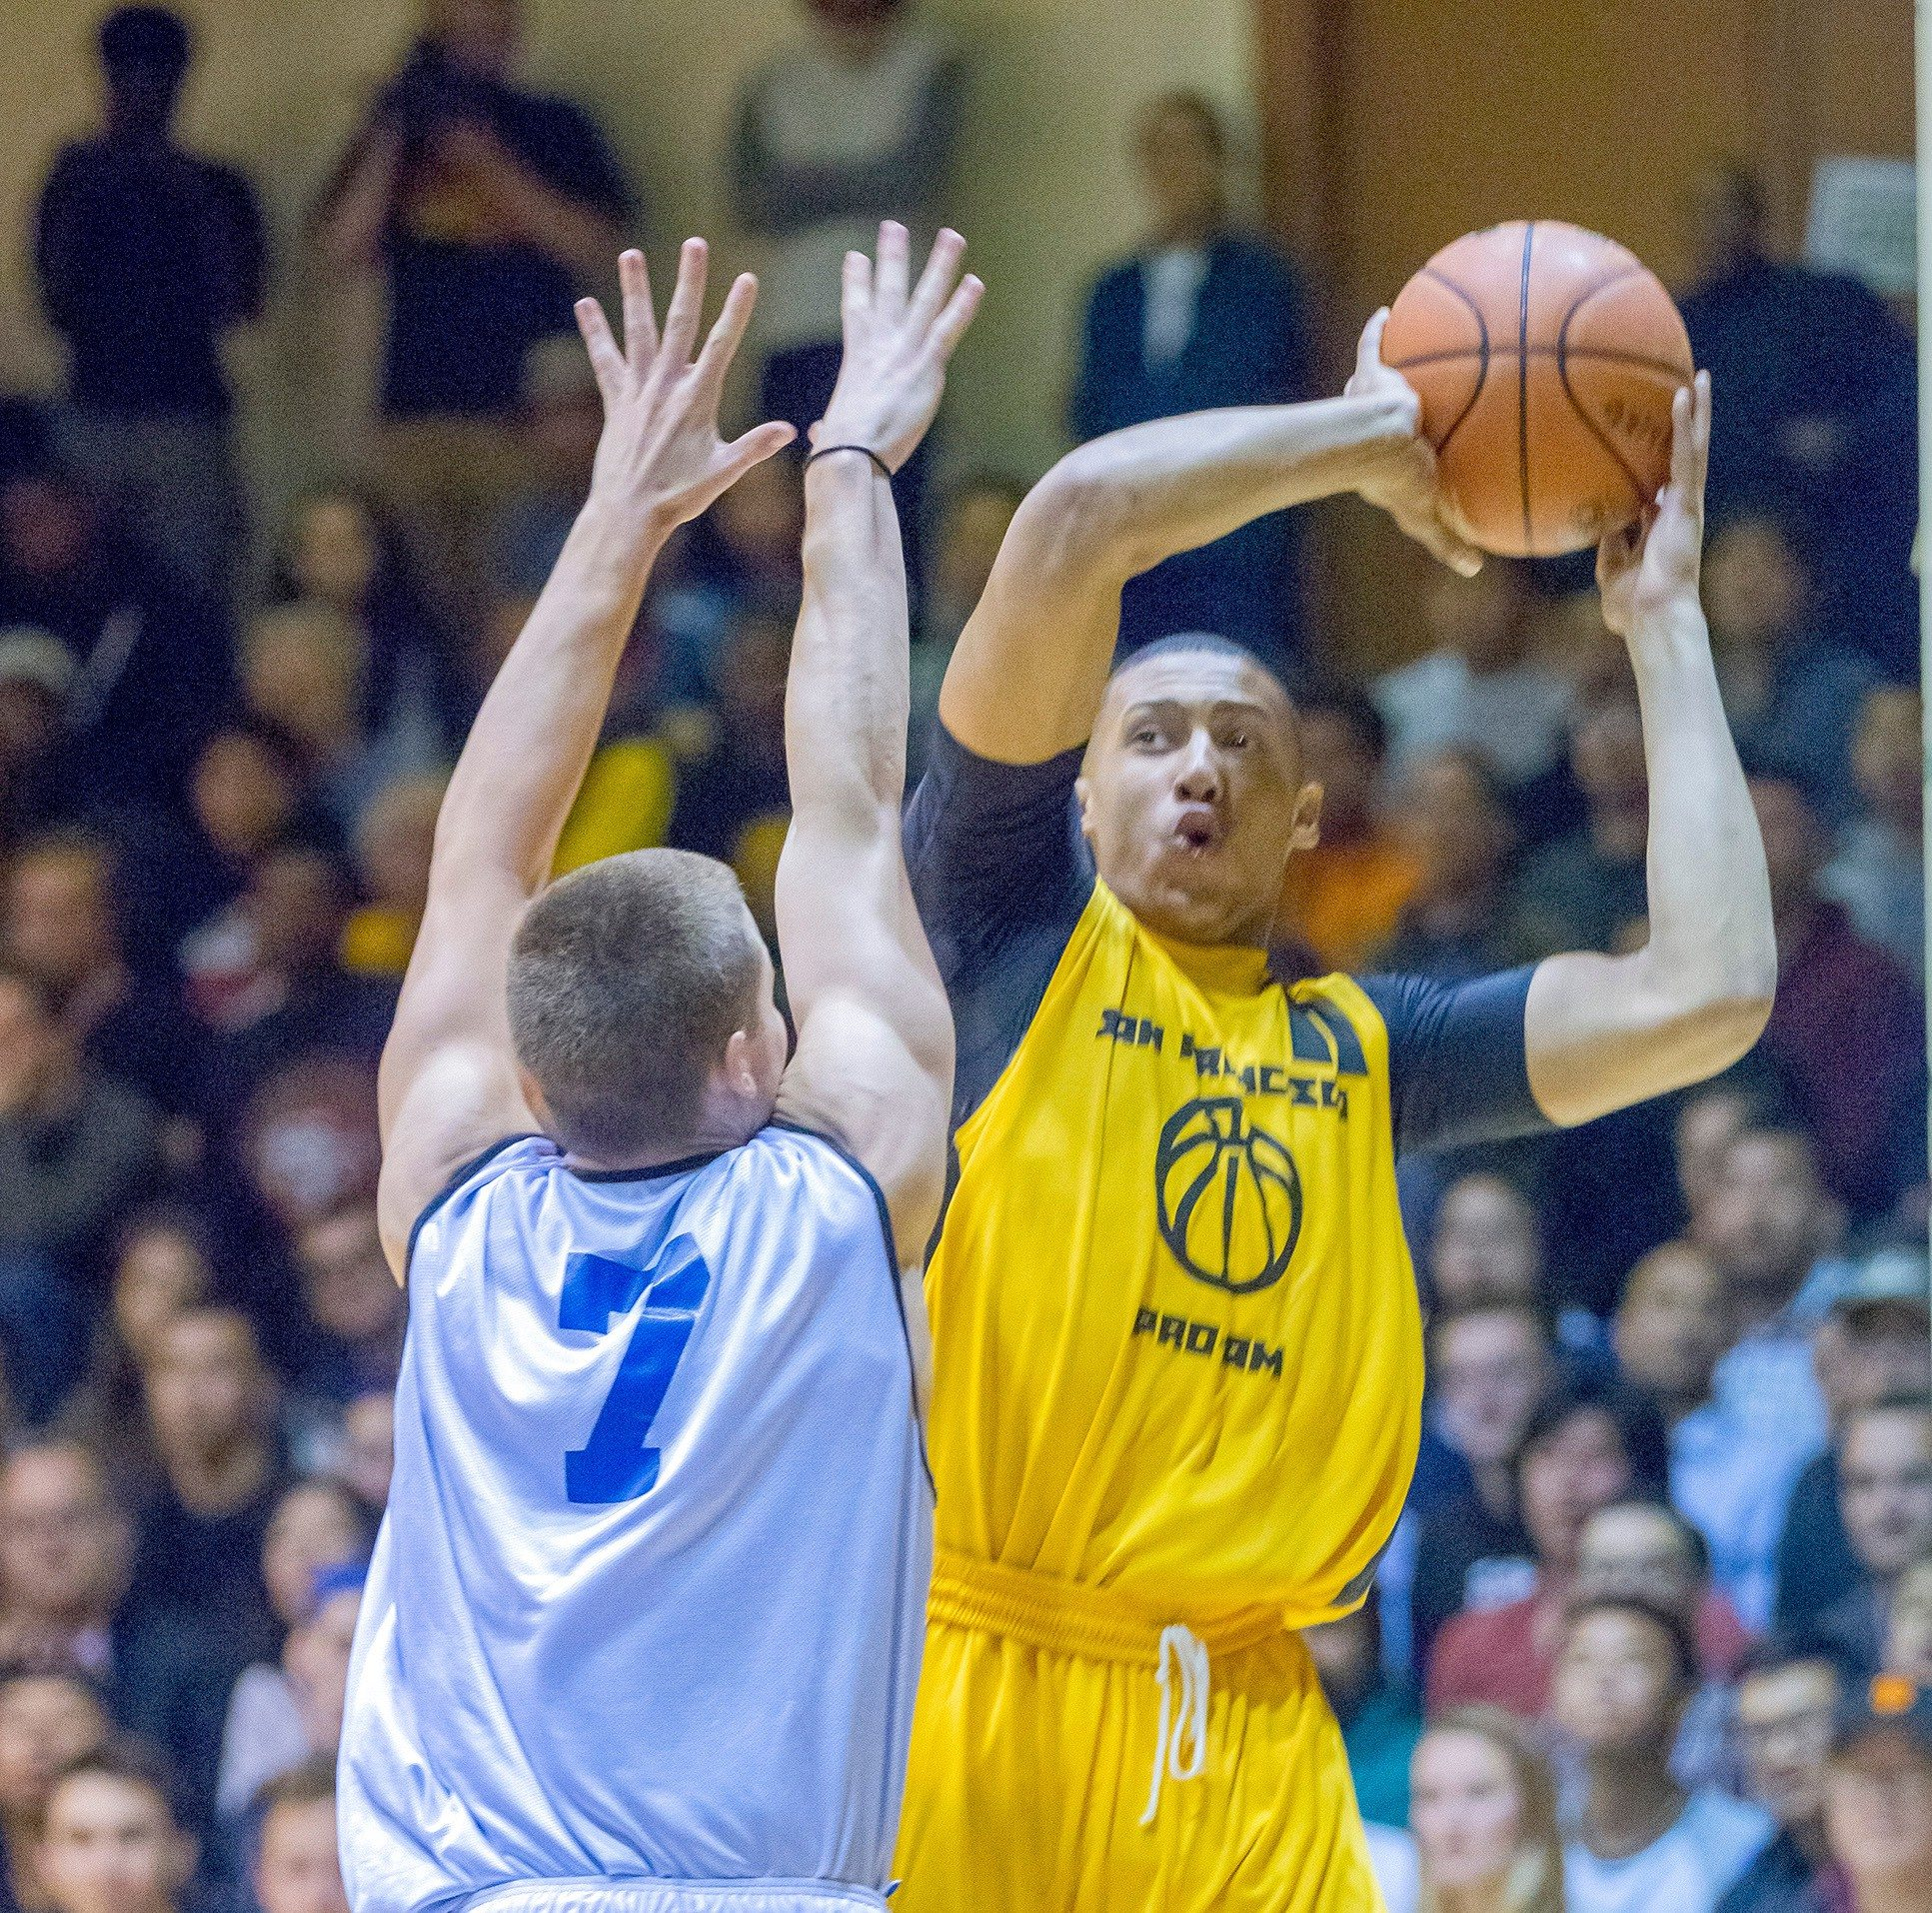 Eric Sun/Special to The S.F. ExaminerNationally recruited two years ago out of St. Ignatius